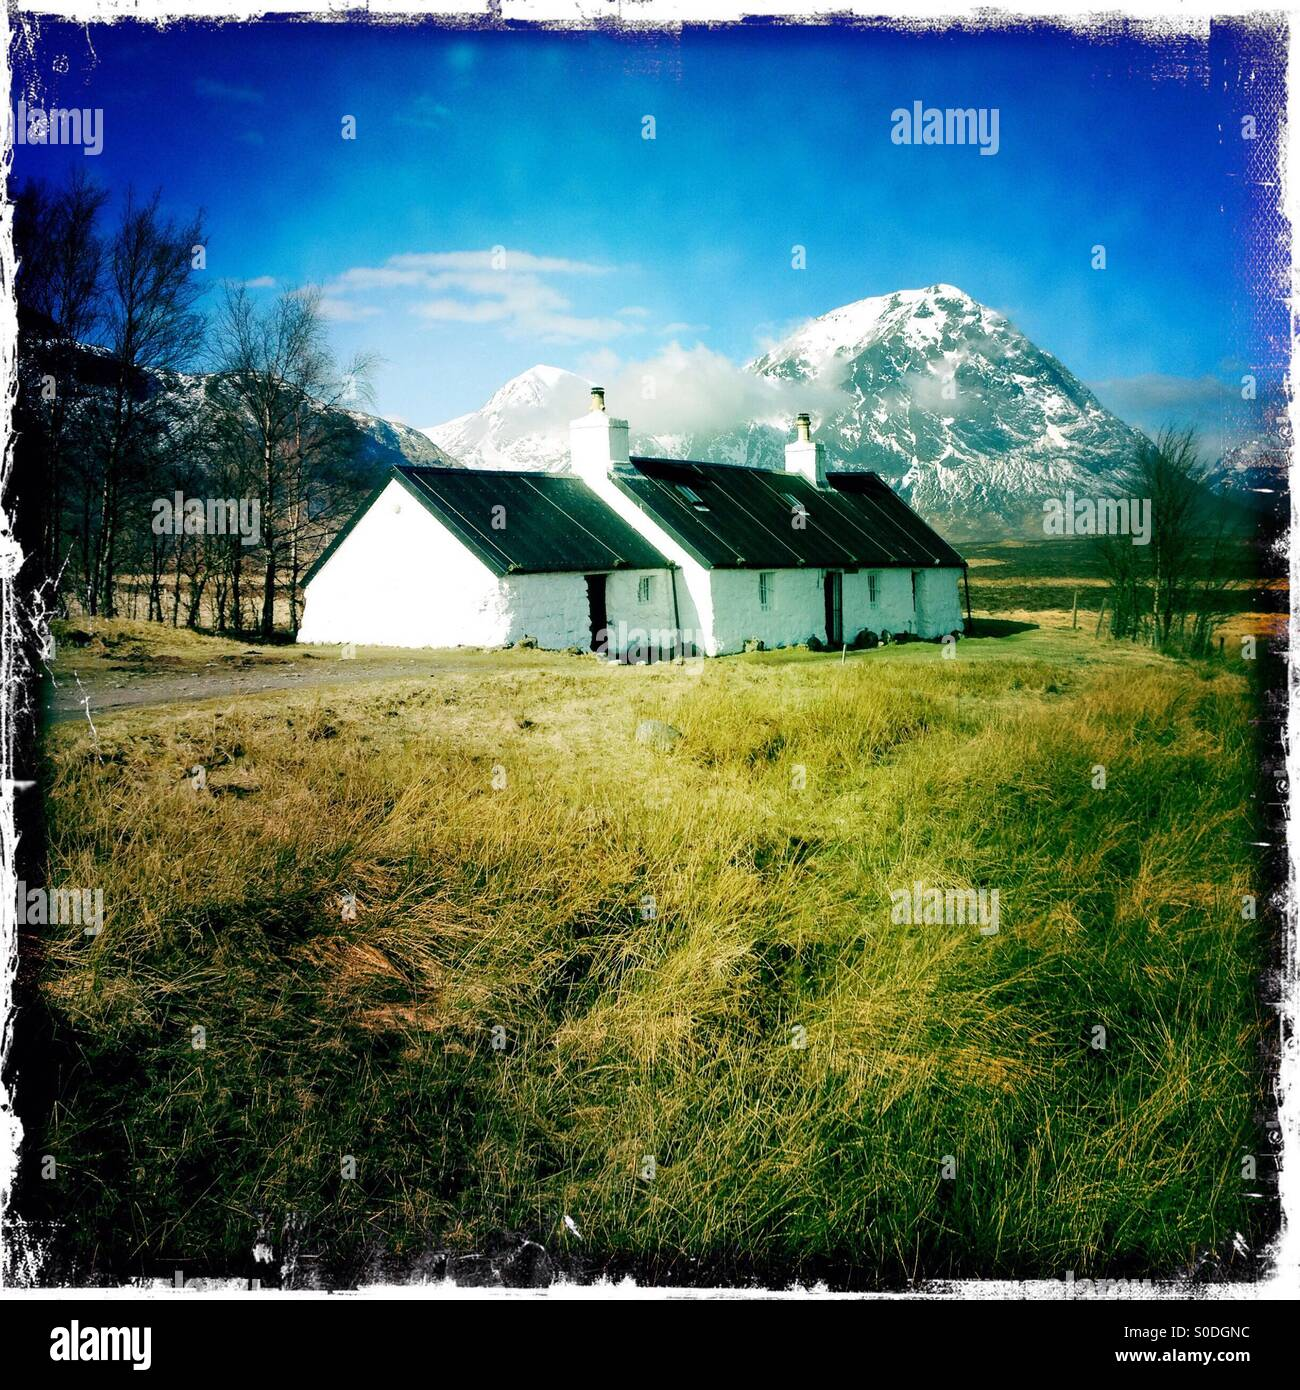 Historic white cottage with mountain snow capped behind, Glencoe Scotland - Stock Image